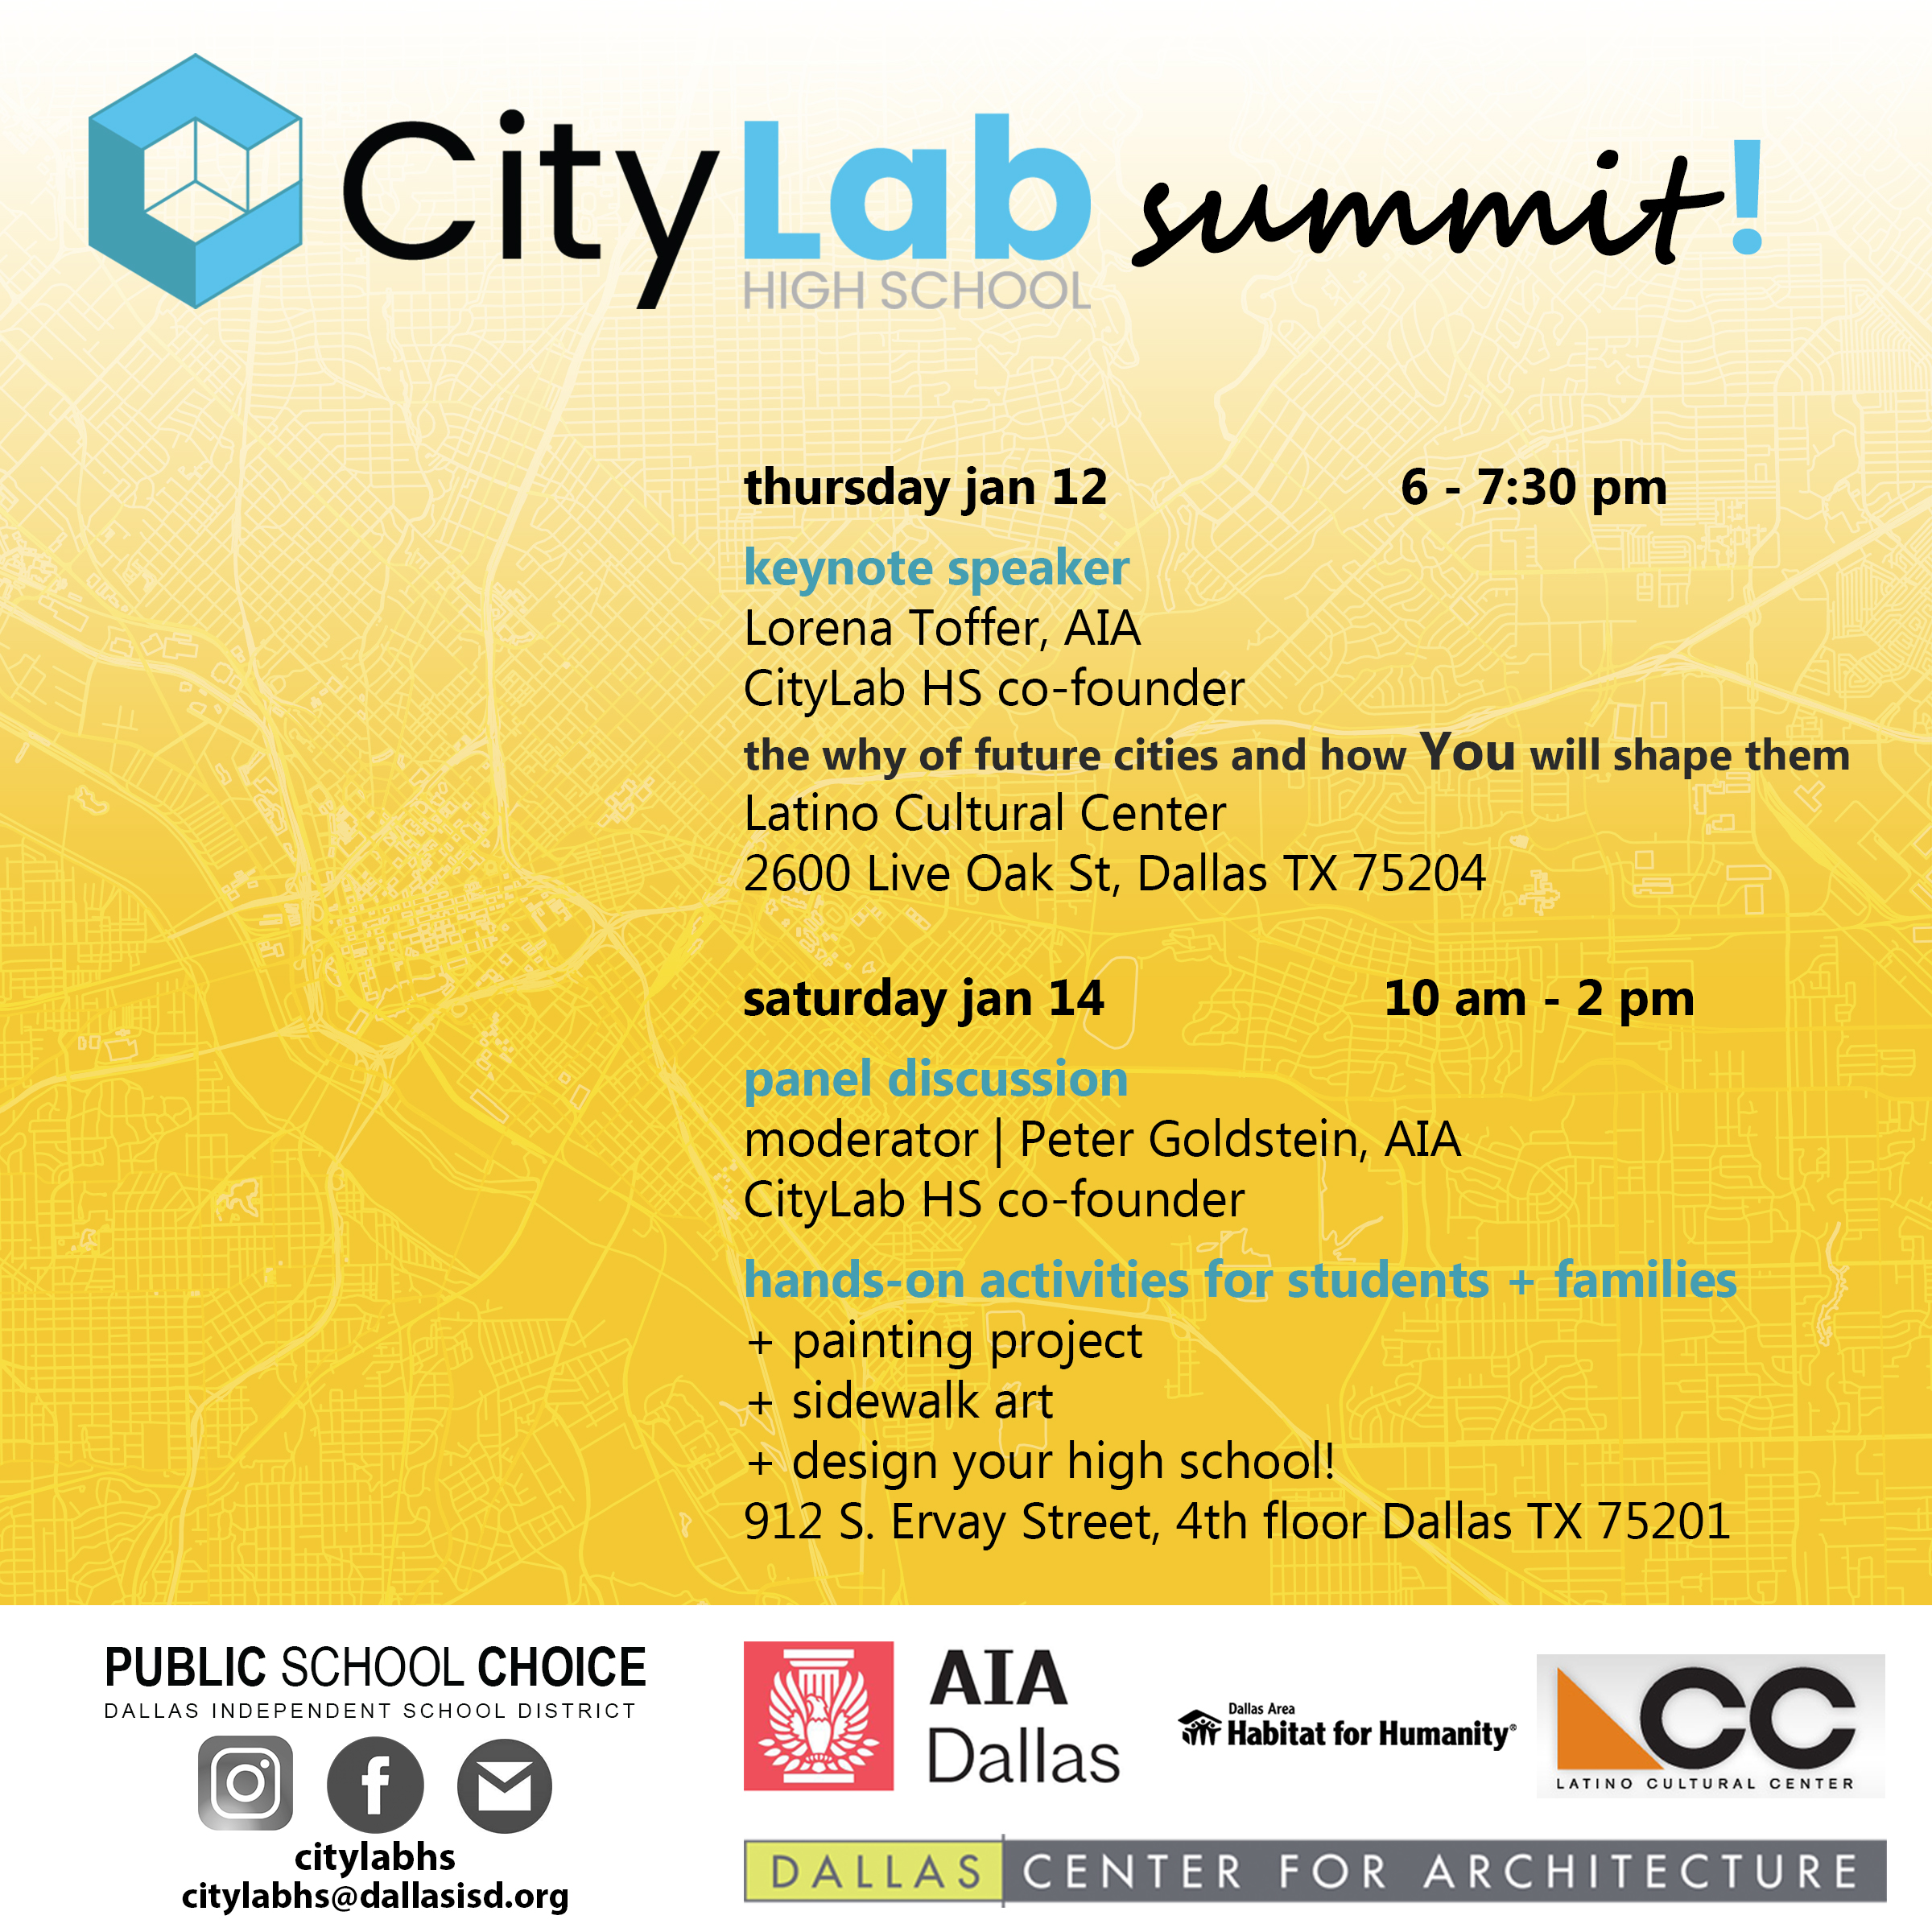 citylabsummit_flyer_01062017-2